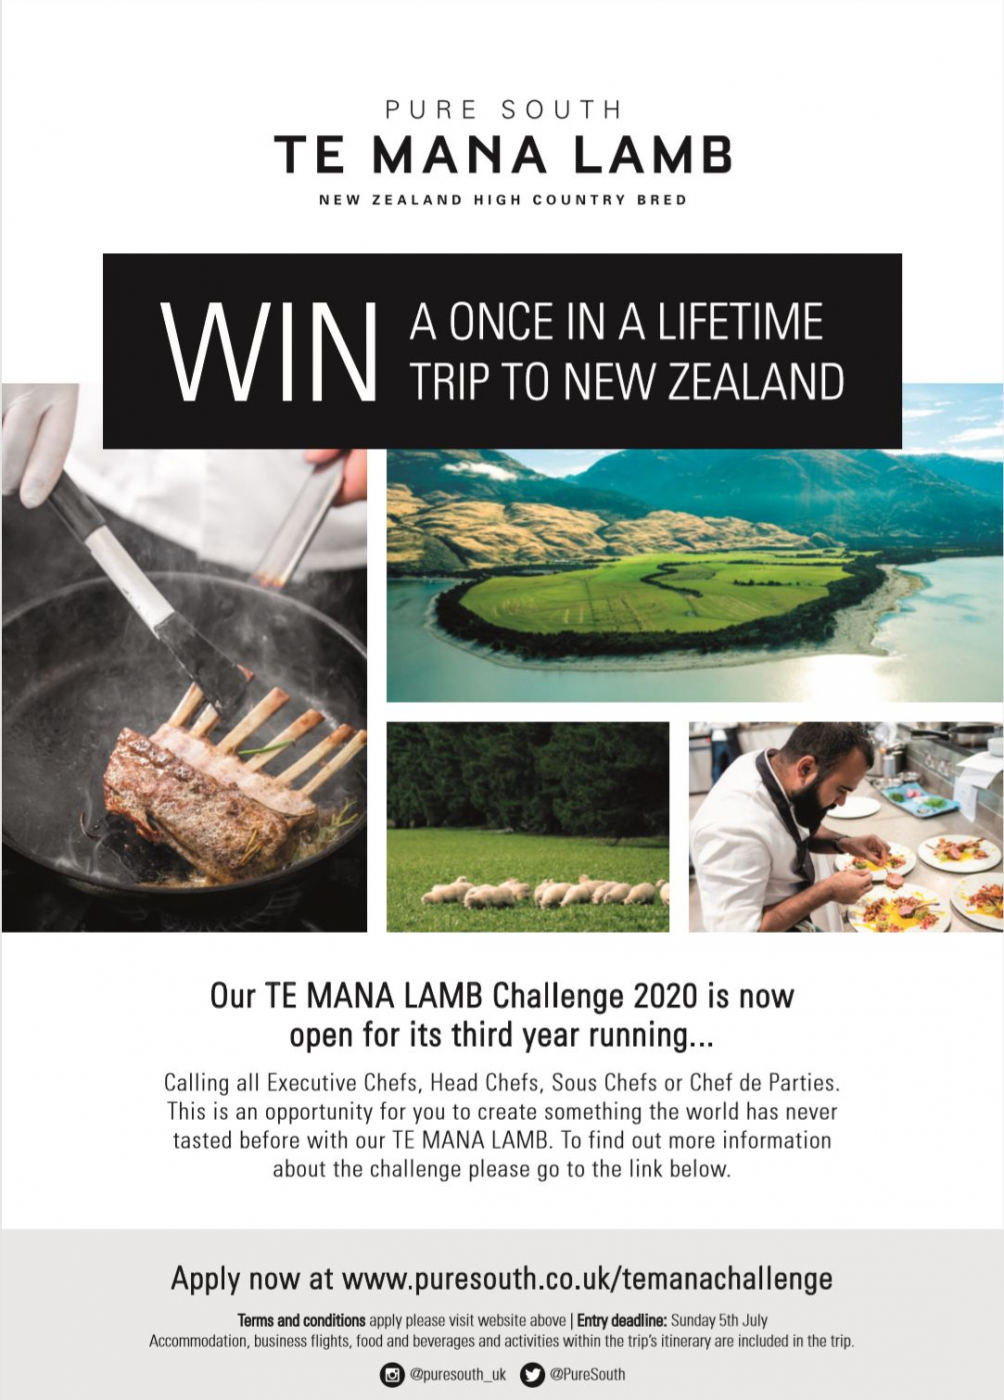 Our TE MANA LAMB Challenge 2020 is back for it's third year running. You could be in with a chance of winning an all expenses trip out to New Zealand head over to our http://puresouth.co.uk/temanachallenge page to find out more!!